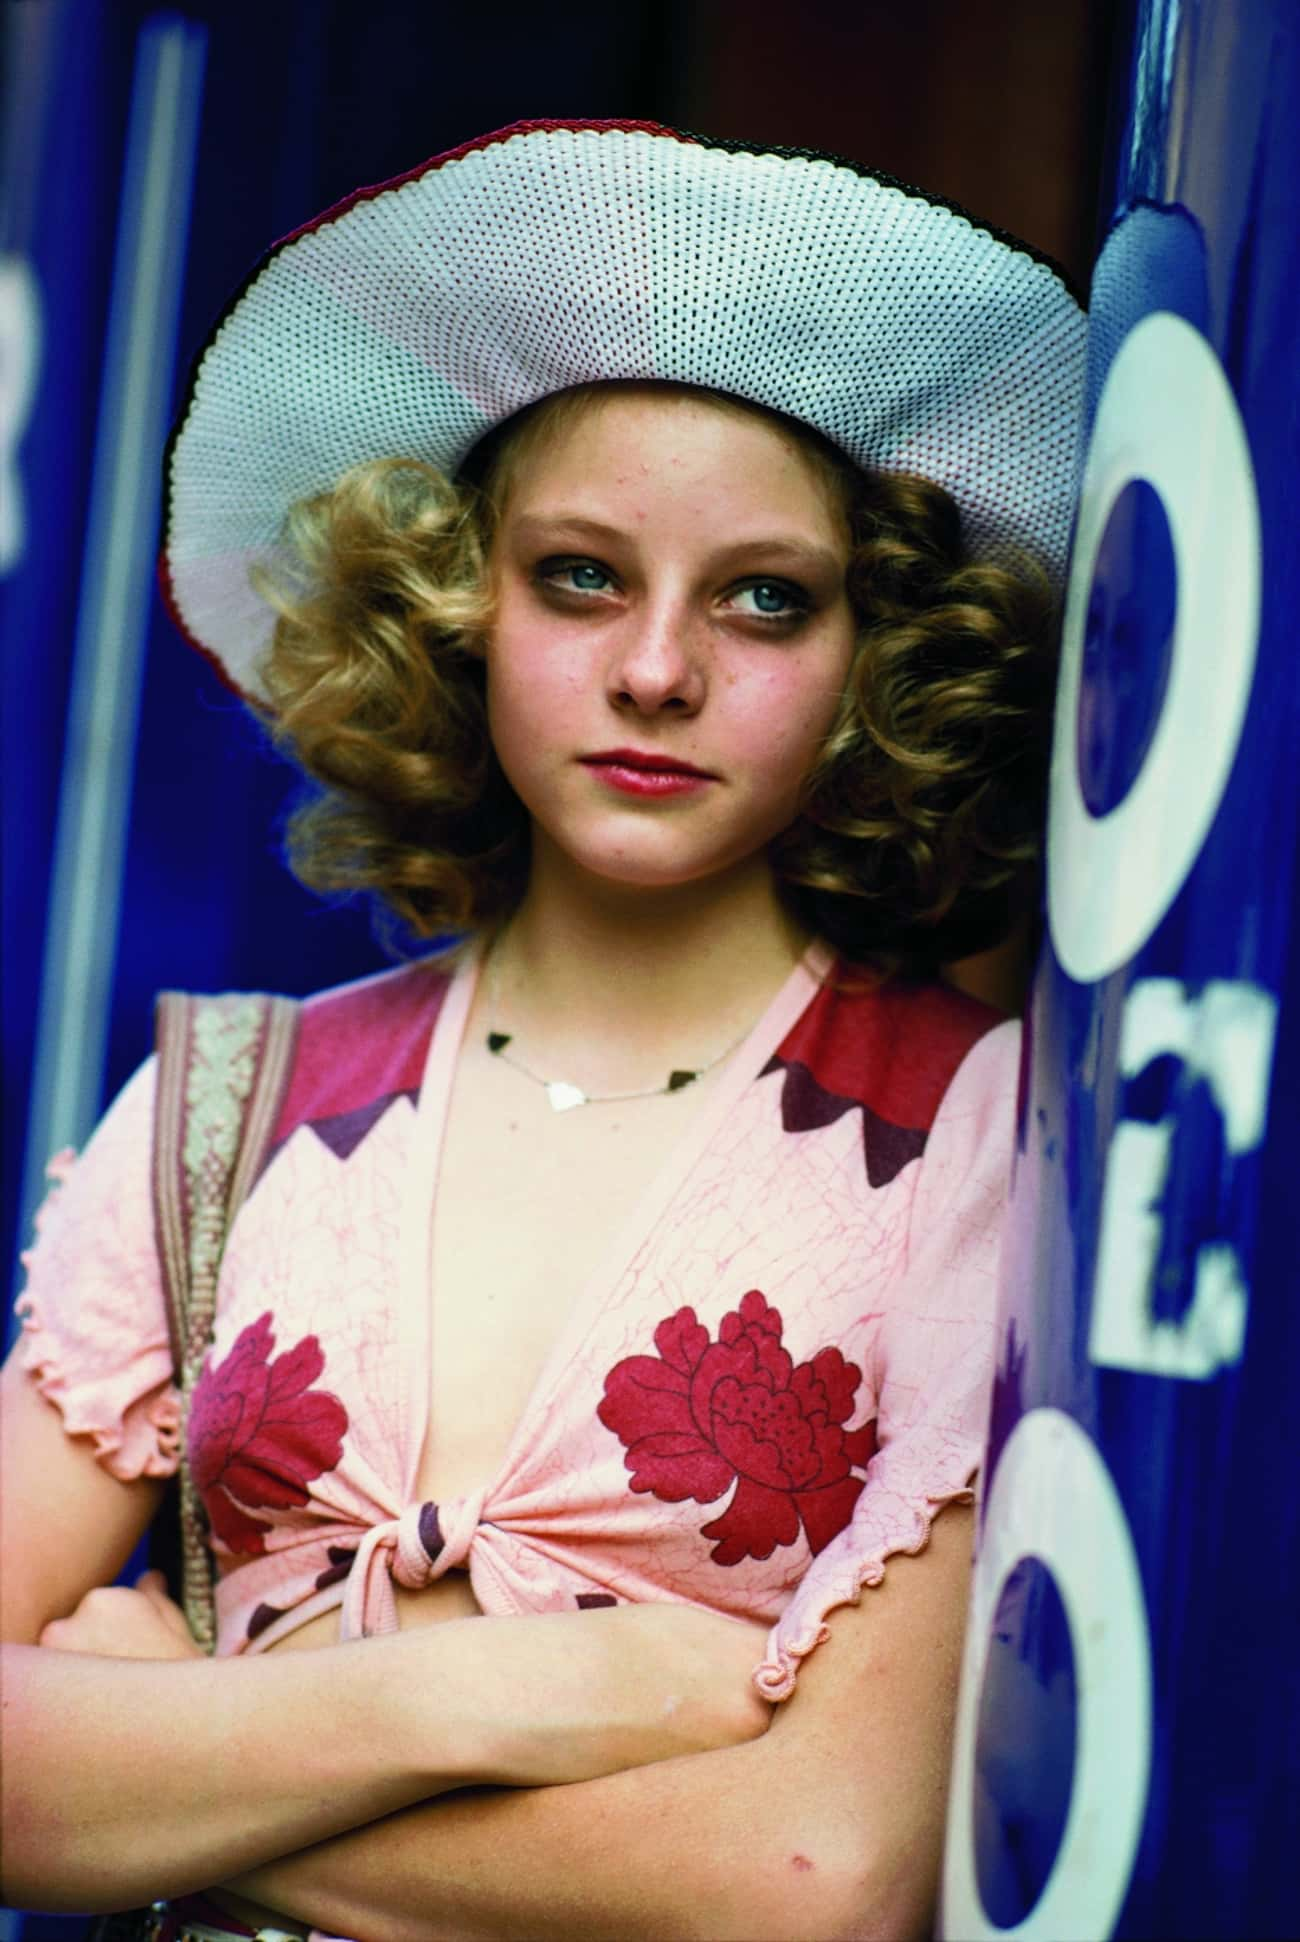 Young Jodie Foster in Pink Flo is listed (or ranked) 3 on the list 20 Insanely Cute Pictures of Young Jodie Foster